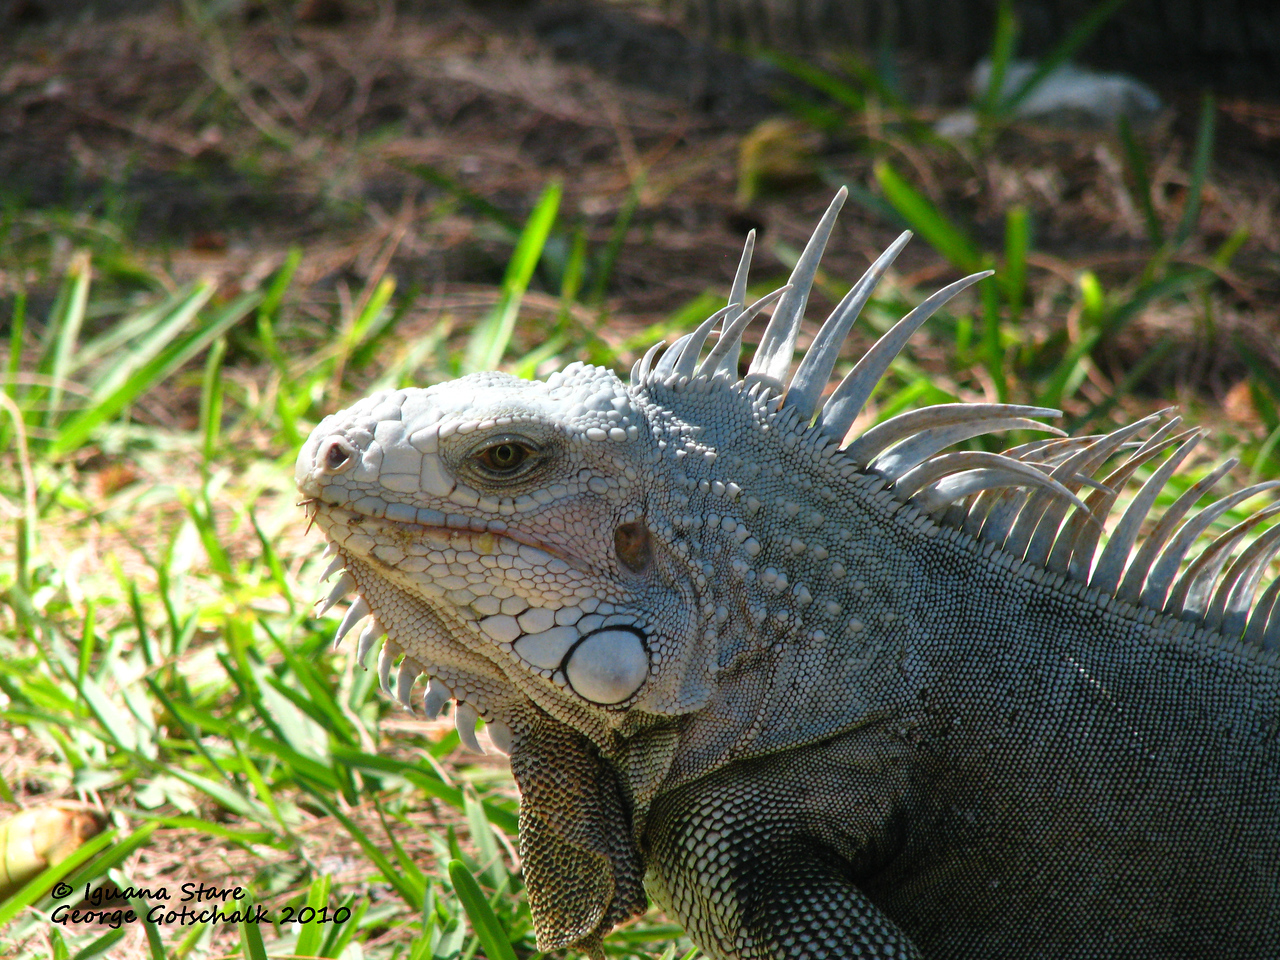 Another iguana giving me the stare down!